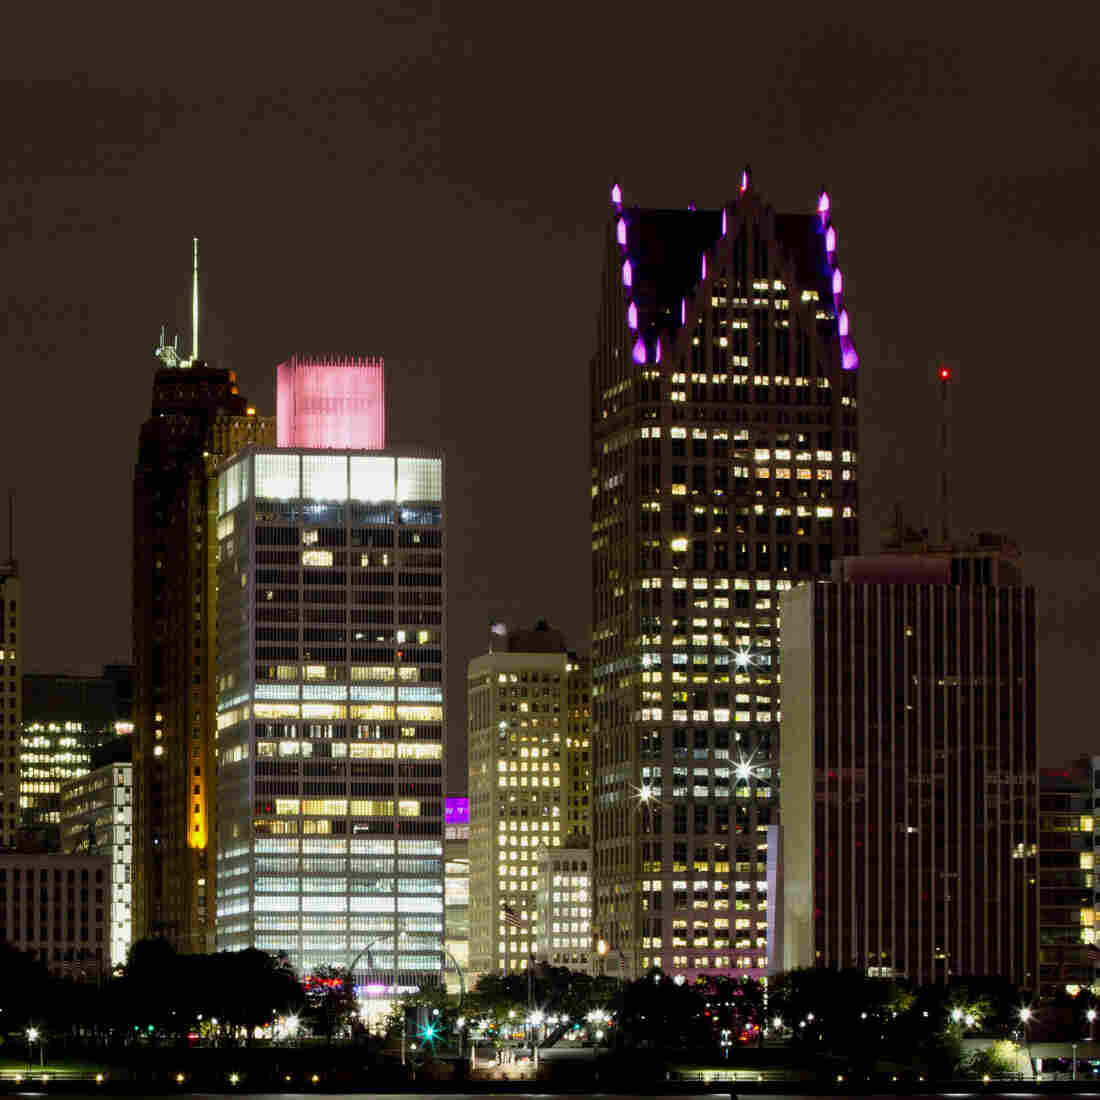 Detroit, after having billions of dollars of debt erased through bankruptcy, has emerged with a razor-thin financial cushion.